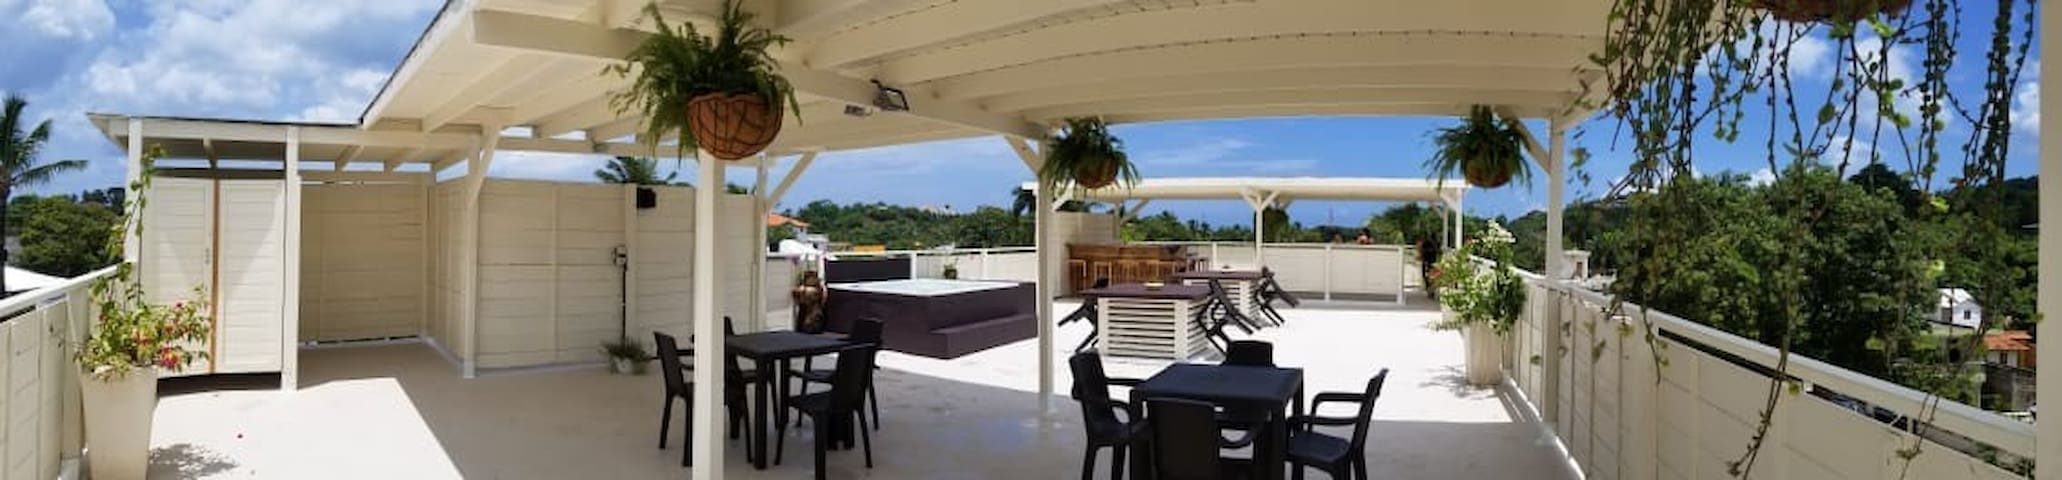 PANORAMIC TERRACE WITH JACUZZI AND BAR